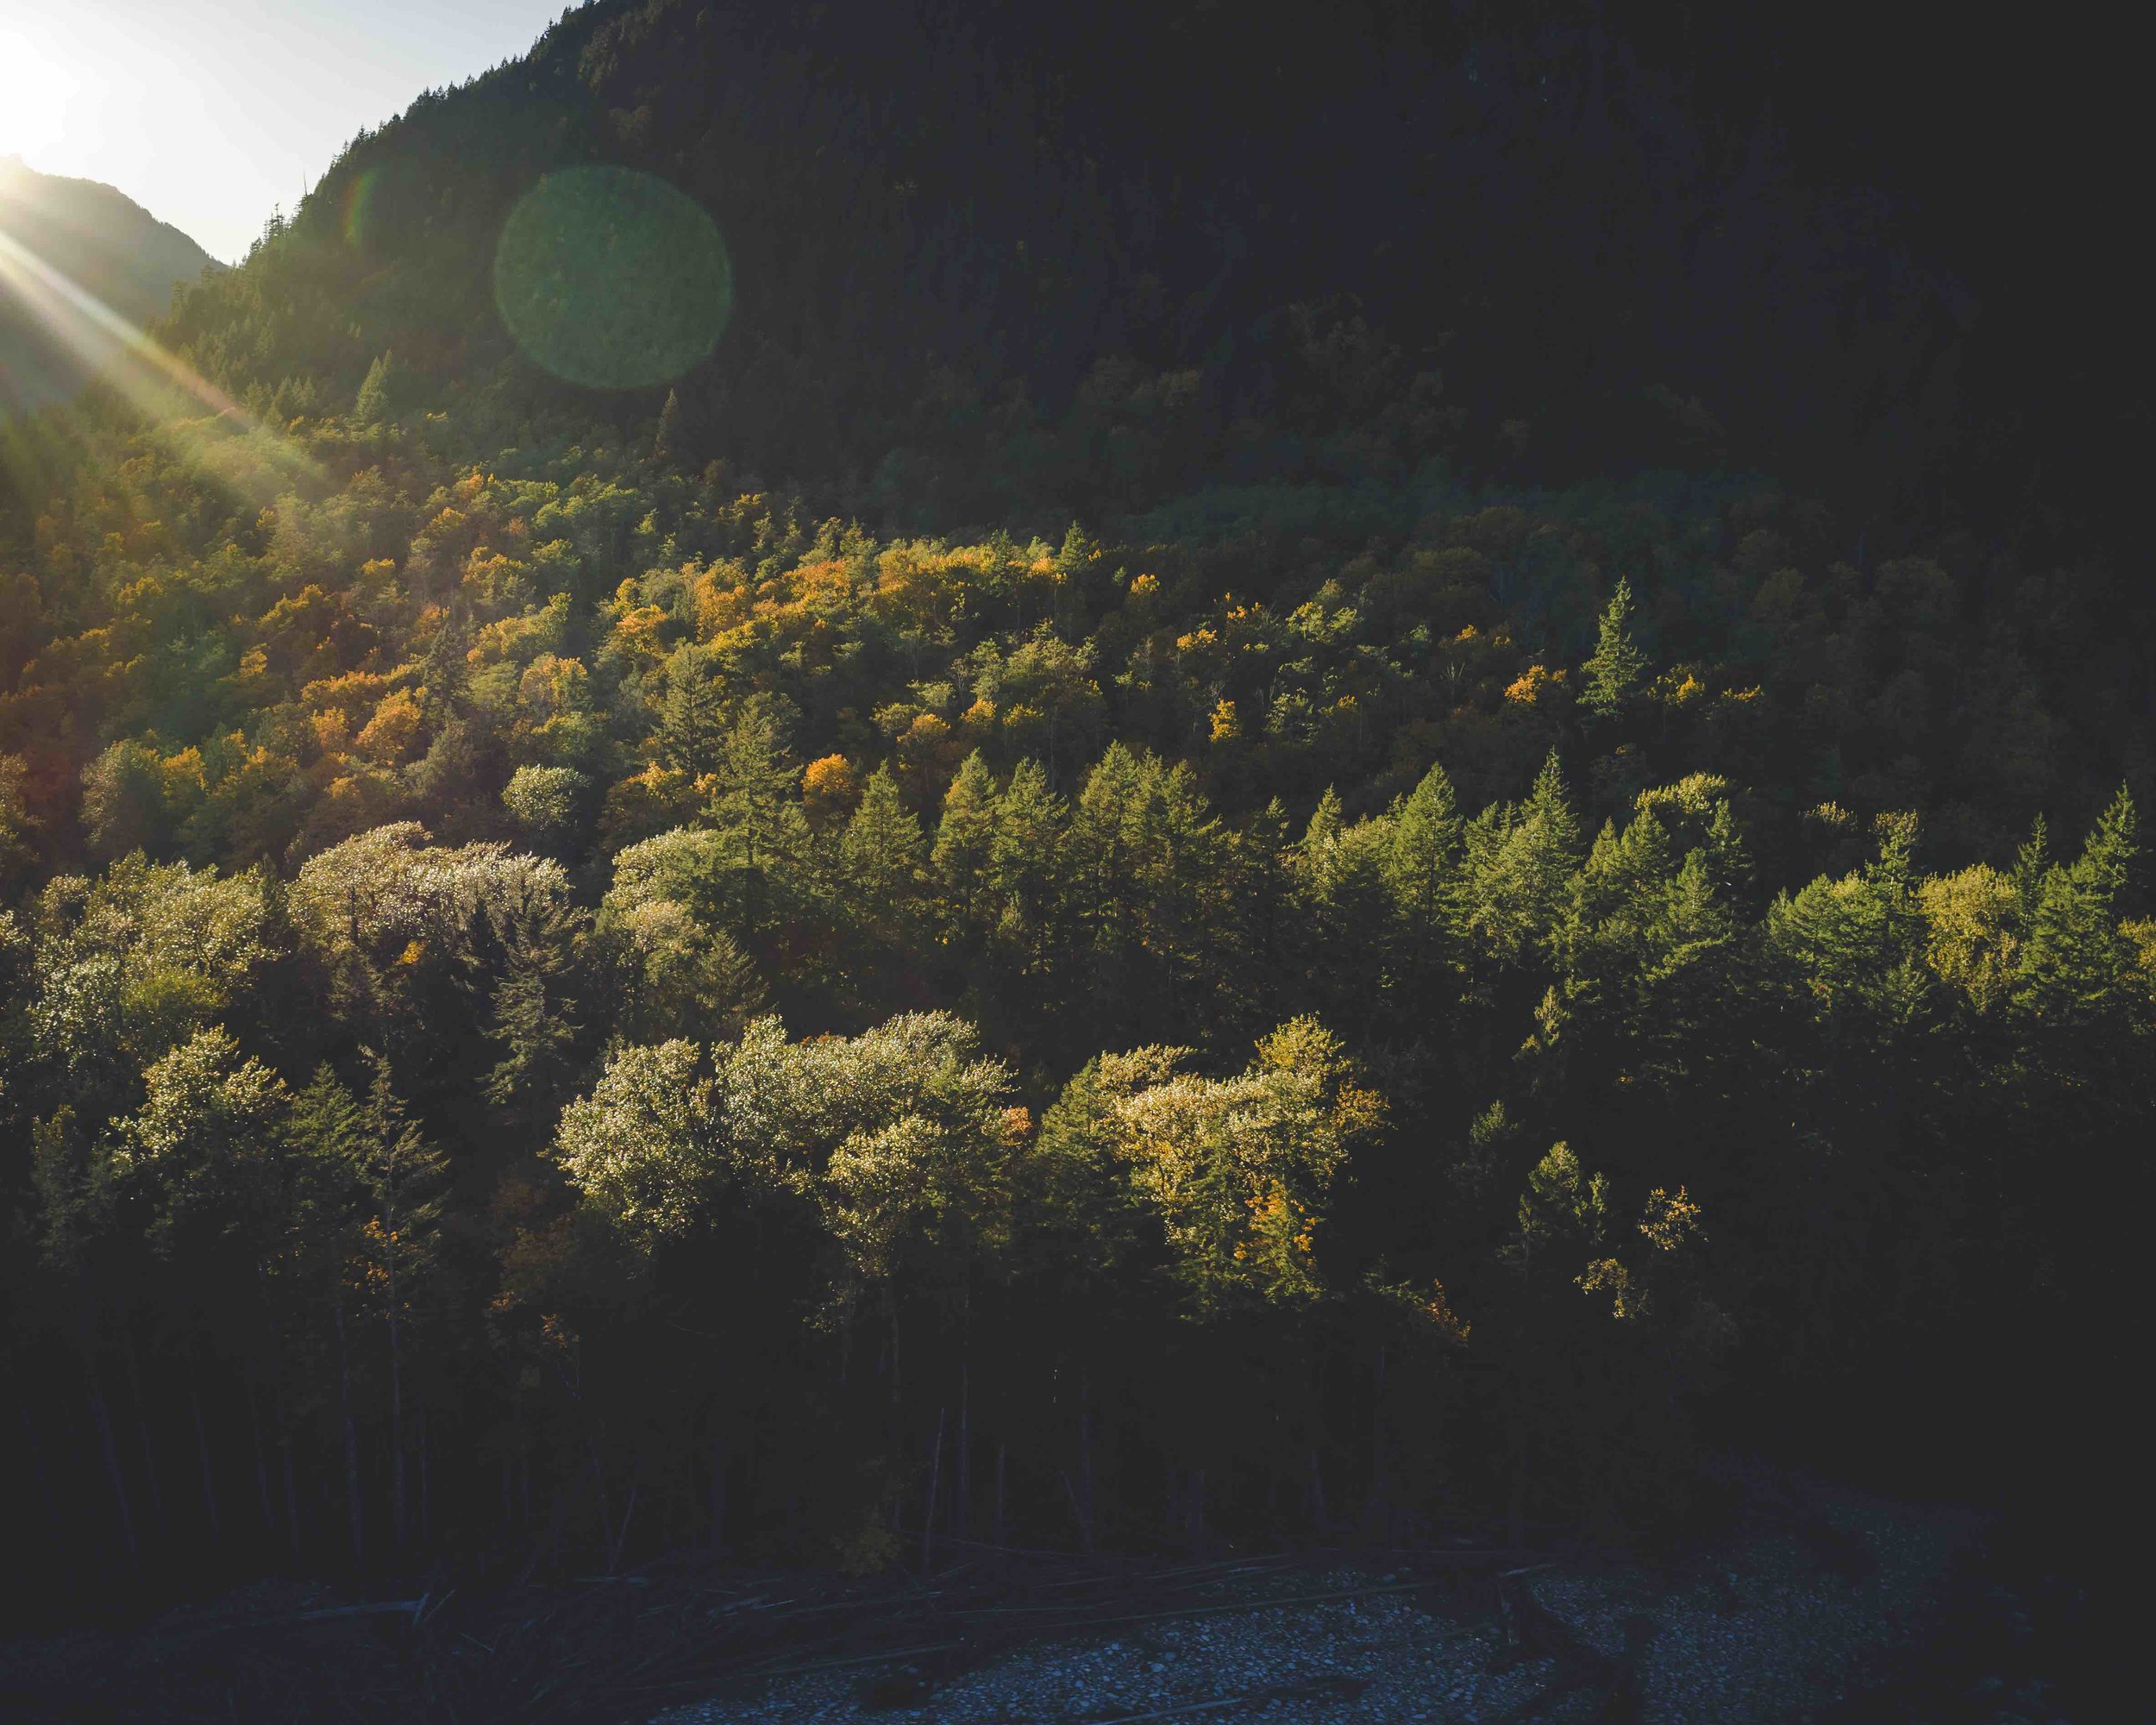 Dramatic_Natural_Lighting_on_Fall_Color_Forest_Trees.jpg